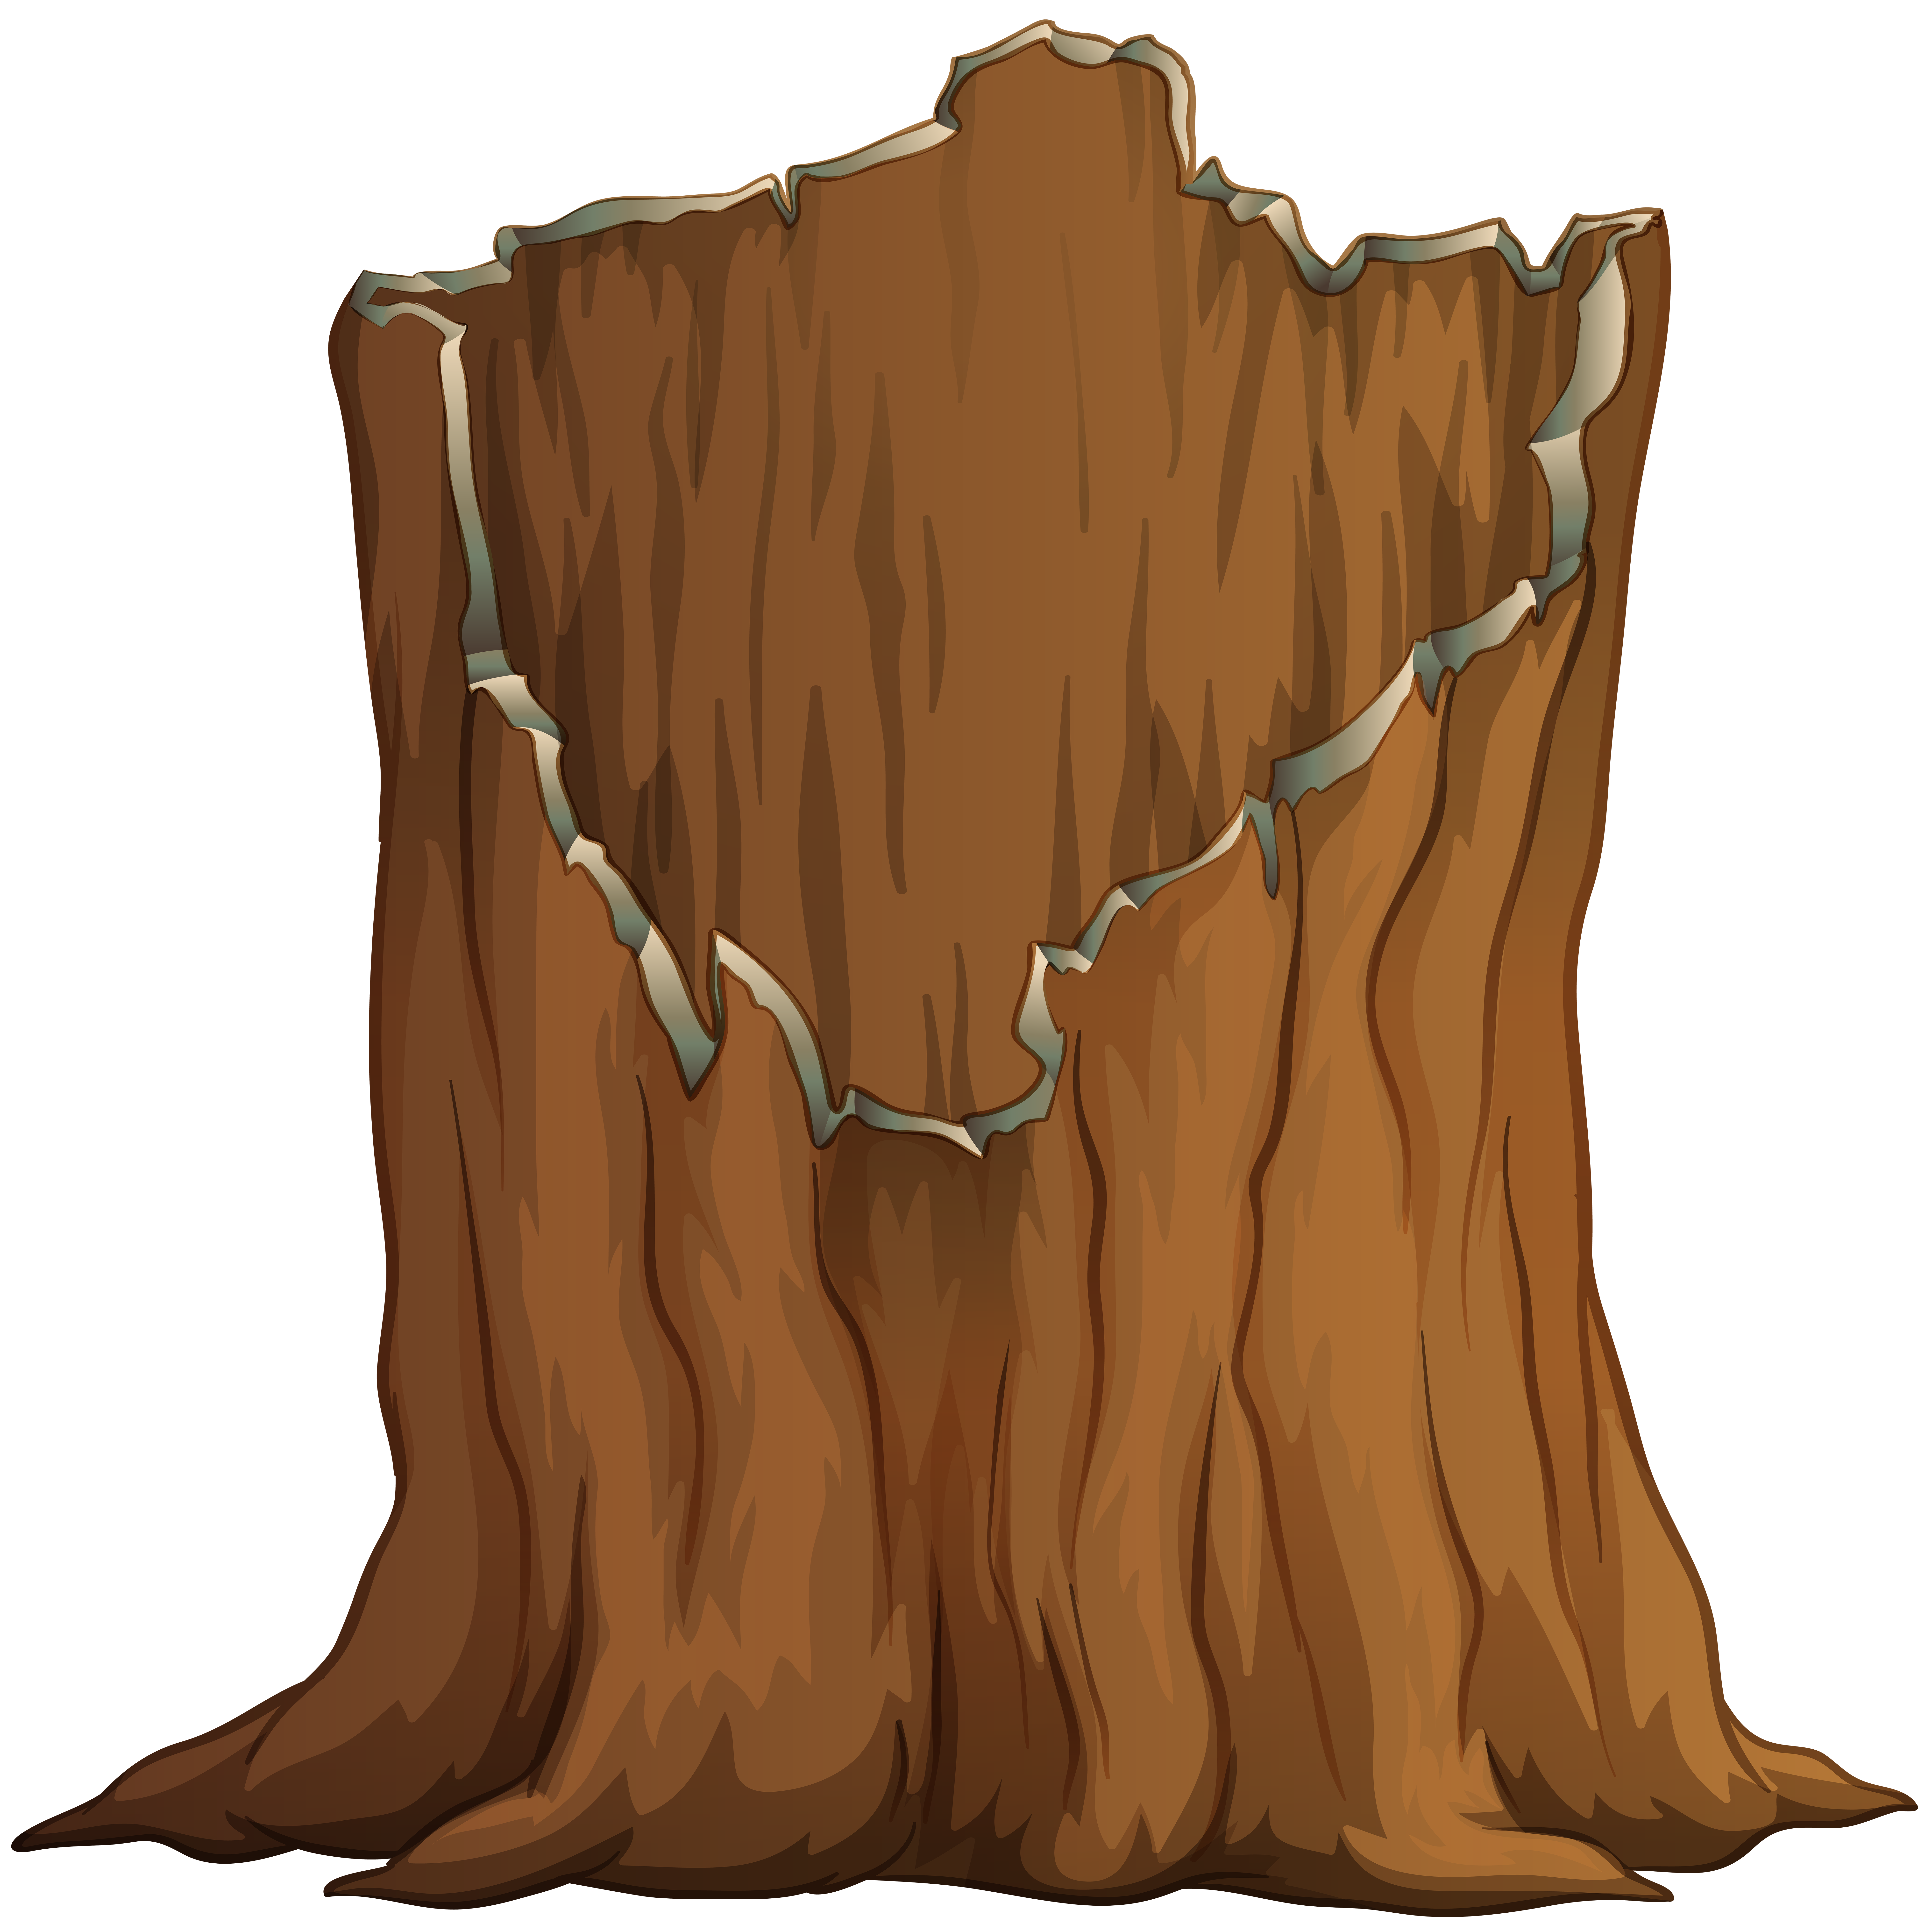 Tree Stump PNG Transparent Clip Art Image.